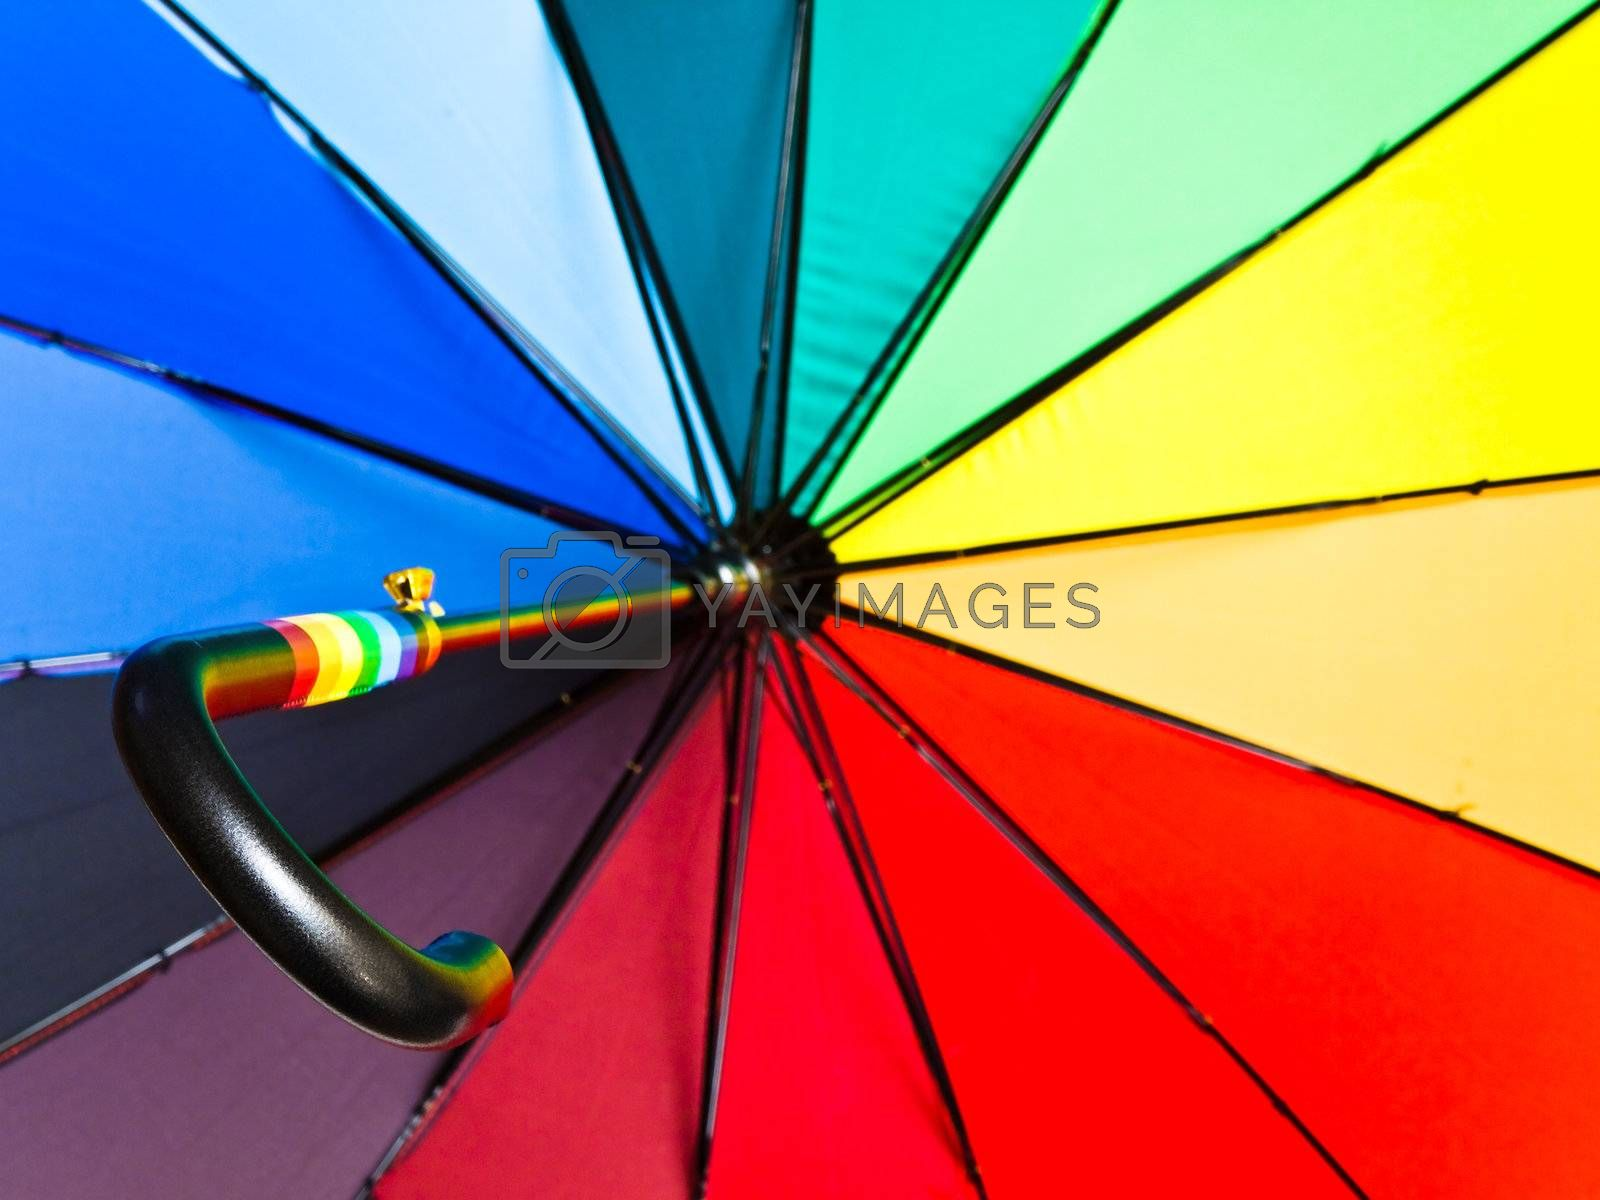 Royalty free image of multicolored opened umbrella by SNR